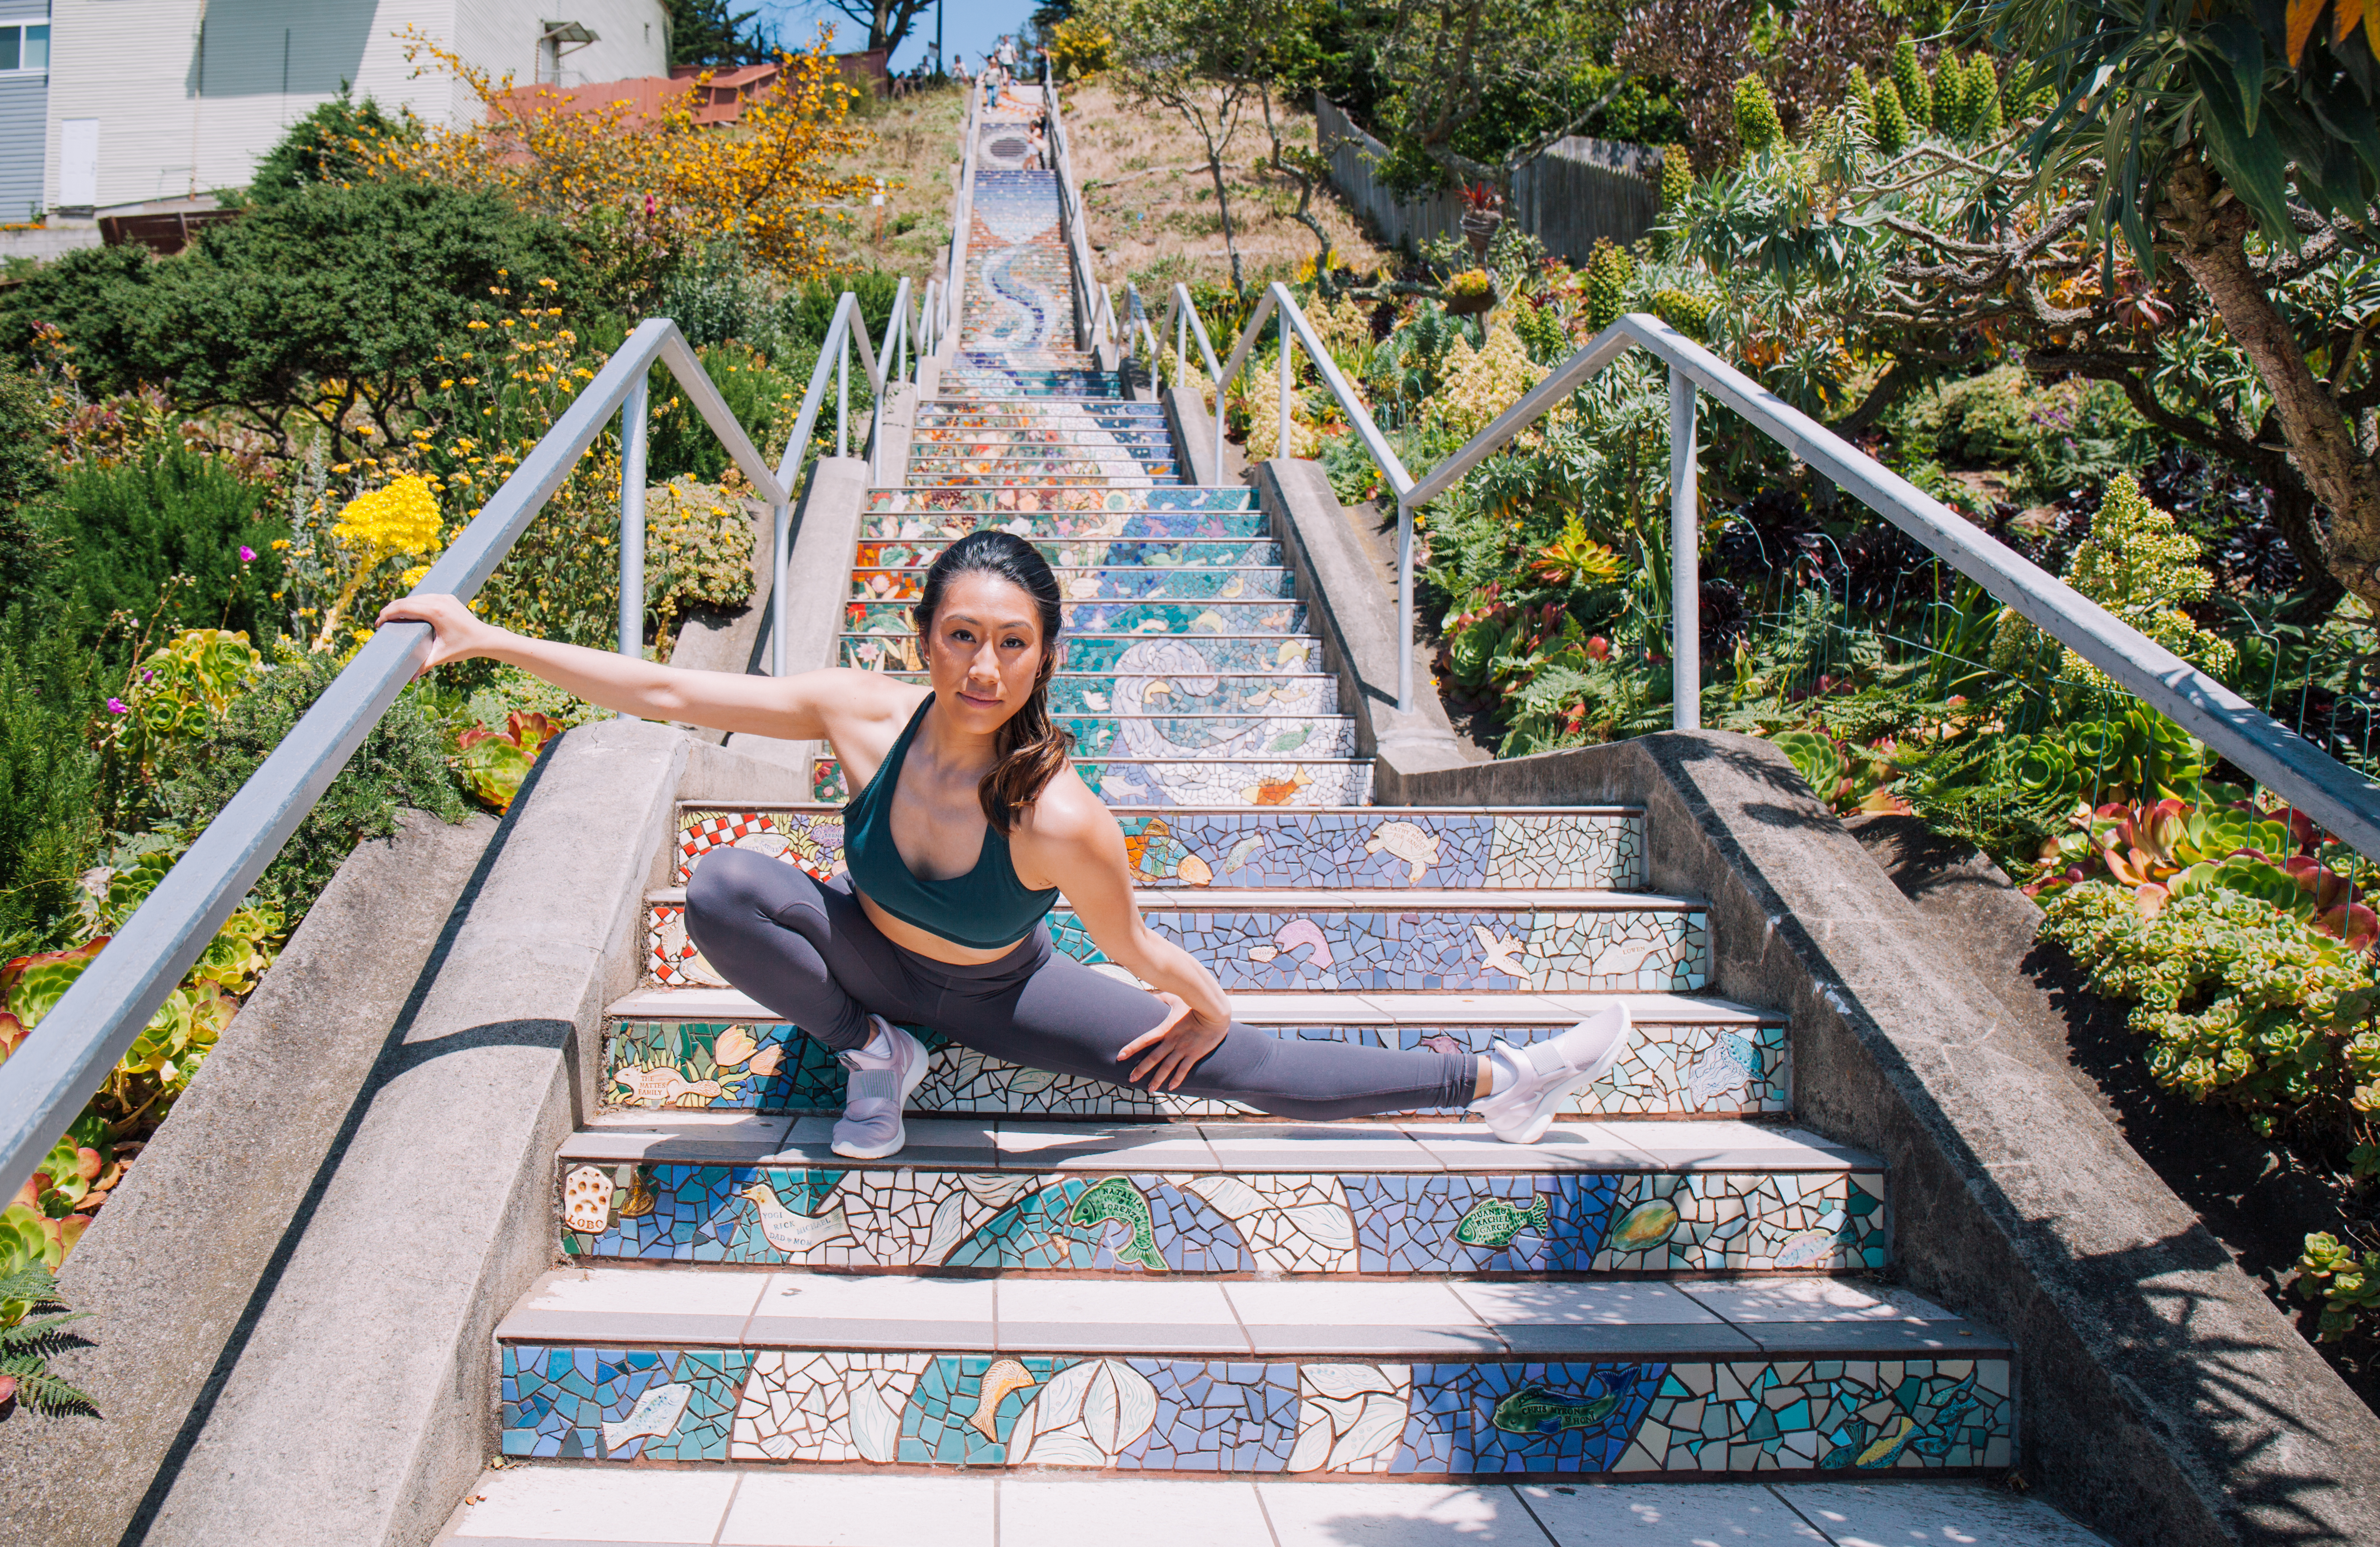 Michelle Hong demonstrates a side lunge on outdoor steps.